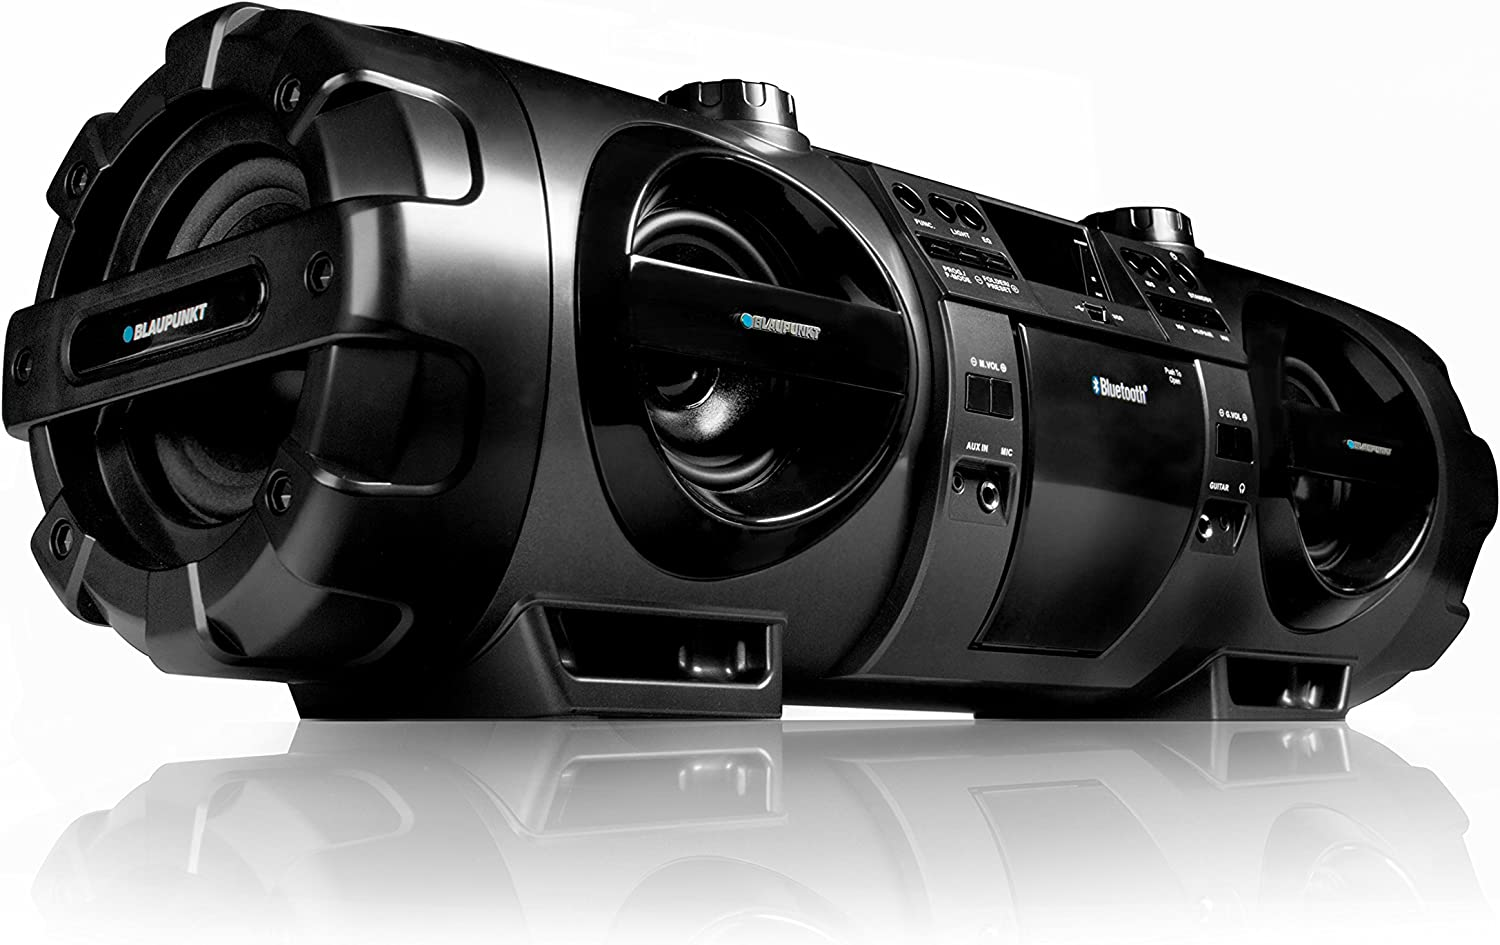 Blaupunkt Bb 1000 Boombox With Cd Mp3 Usb Bluetooth Fm Aux In Microphone And Guitar Black Home Cinema Tv Video